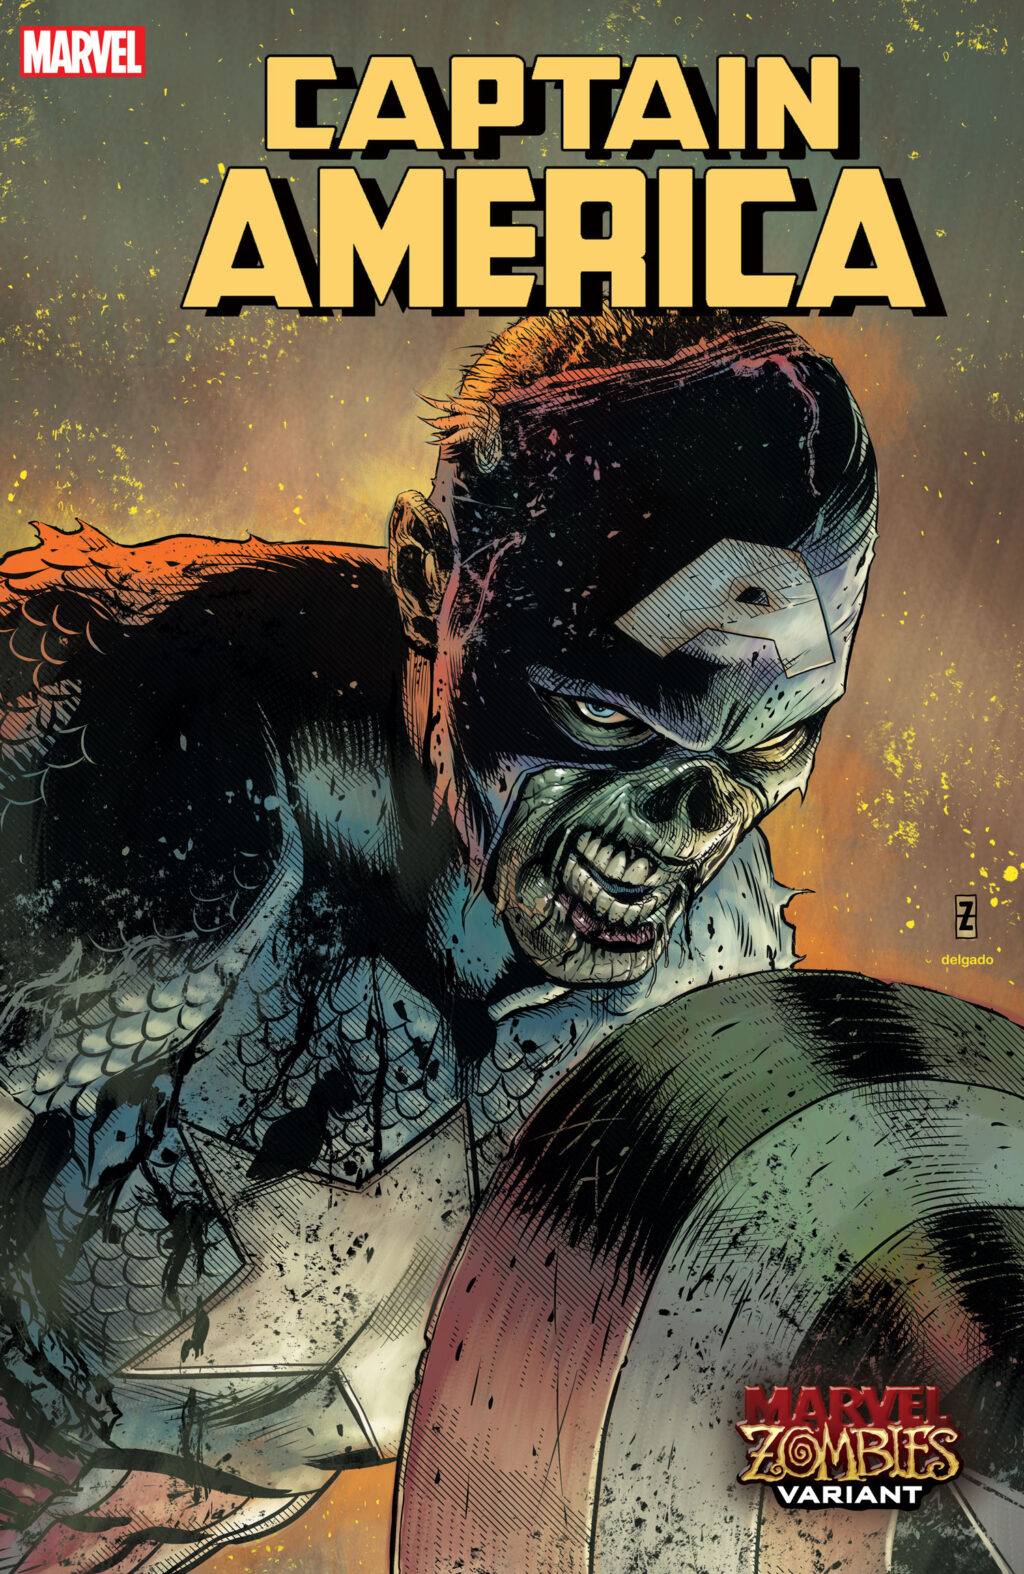 CAPA2018021 Zircher Zombie var 1024x1574 - Image Gallery: The Undead Rise in April's MARVEL ZOMBIES Variant Covers